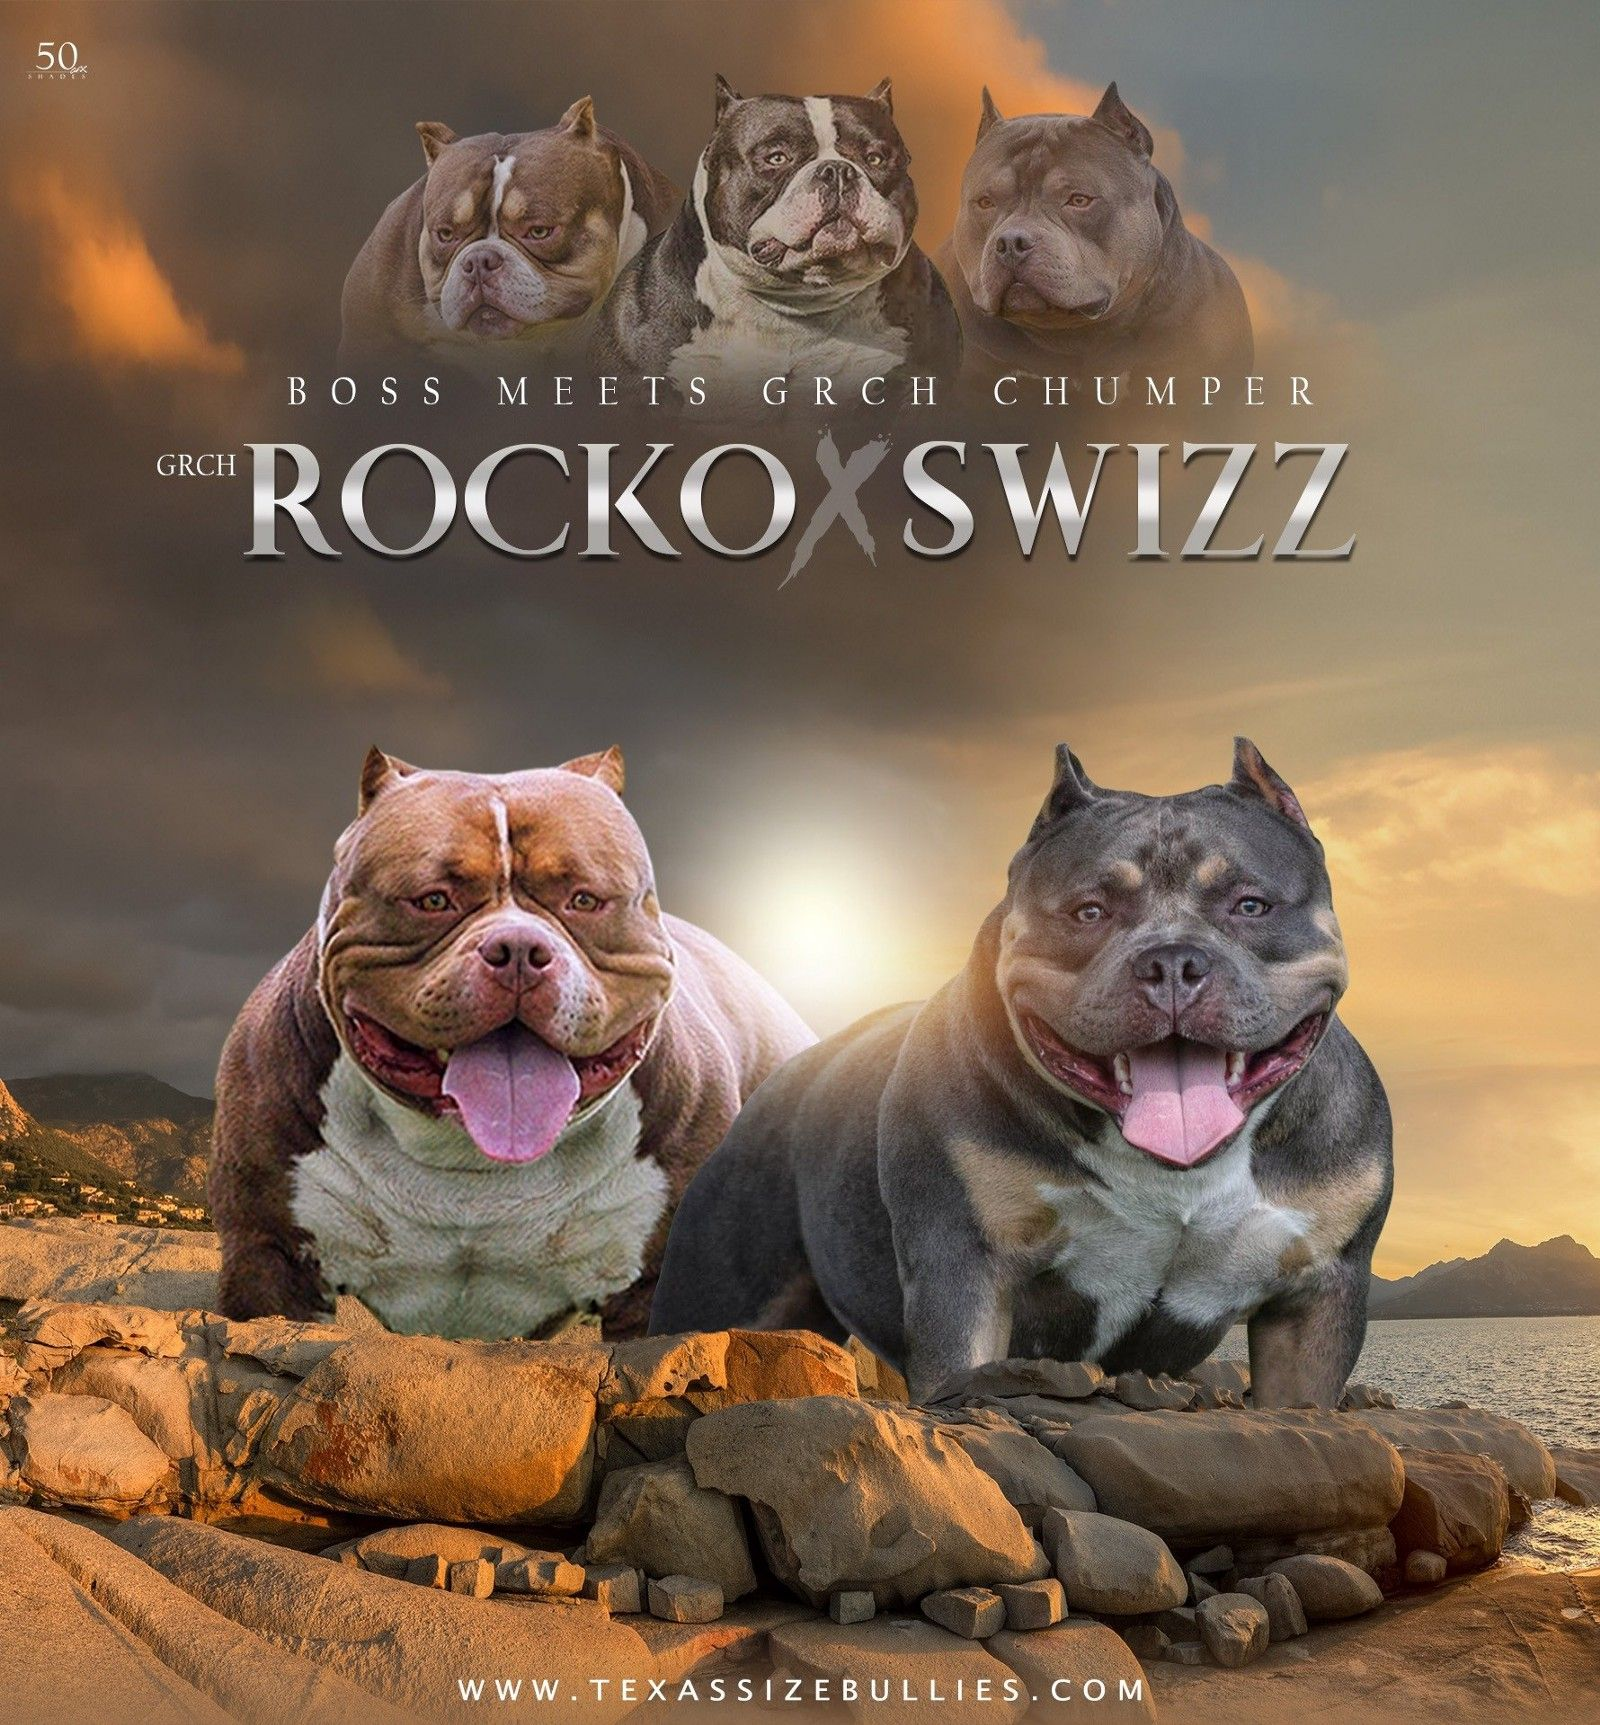 BEST POCKET BULLY PUPPIES FOR SALE American bully pocket